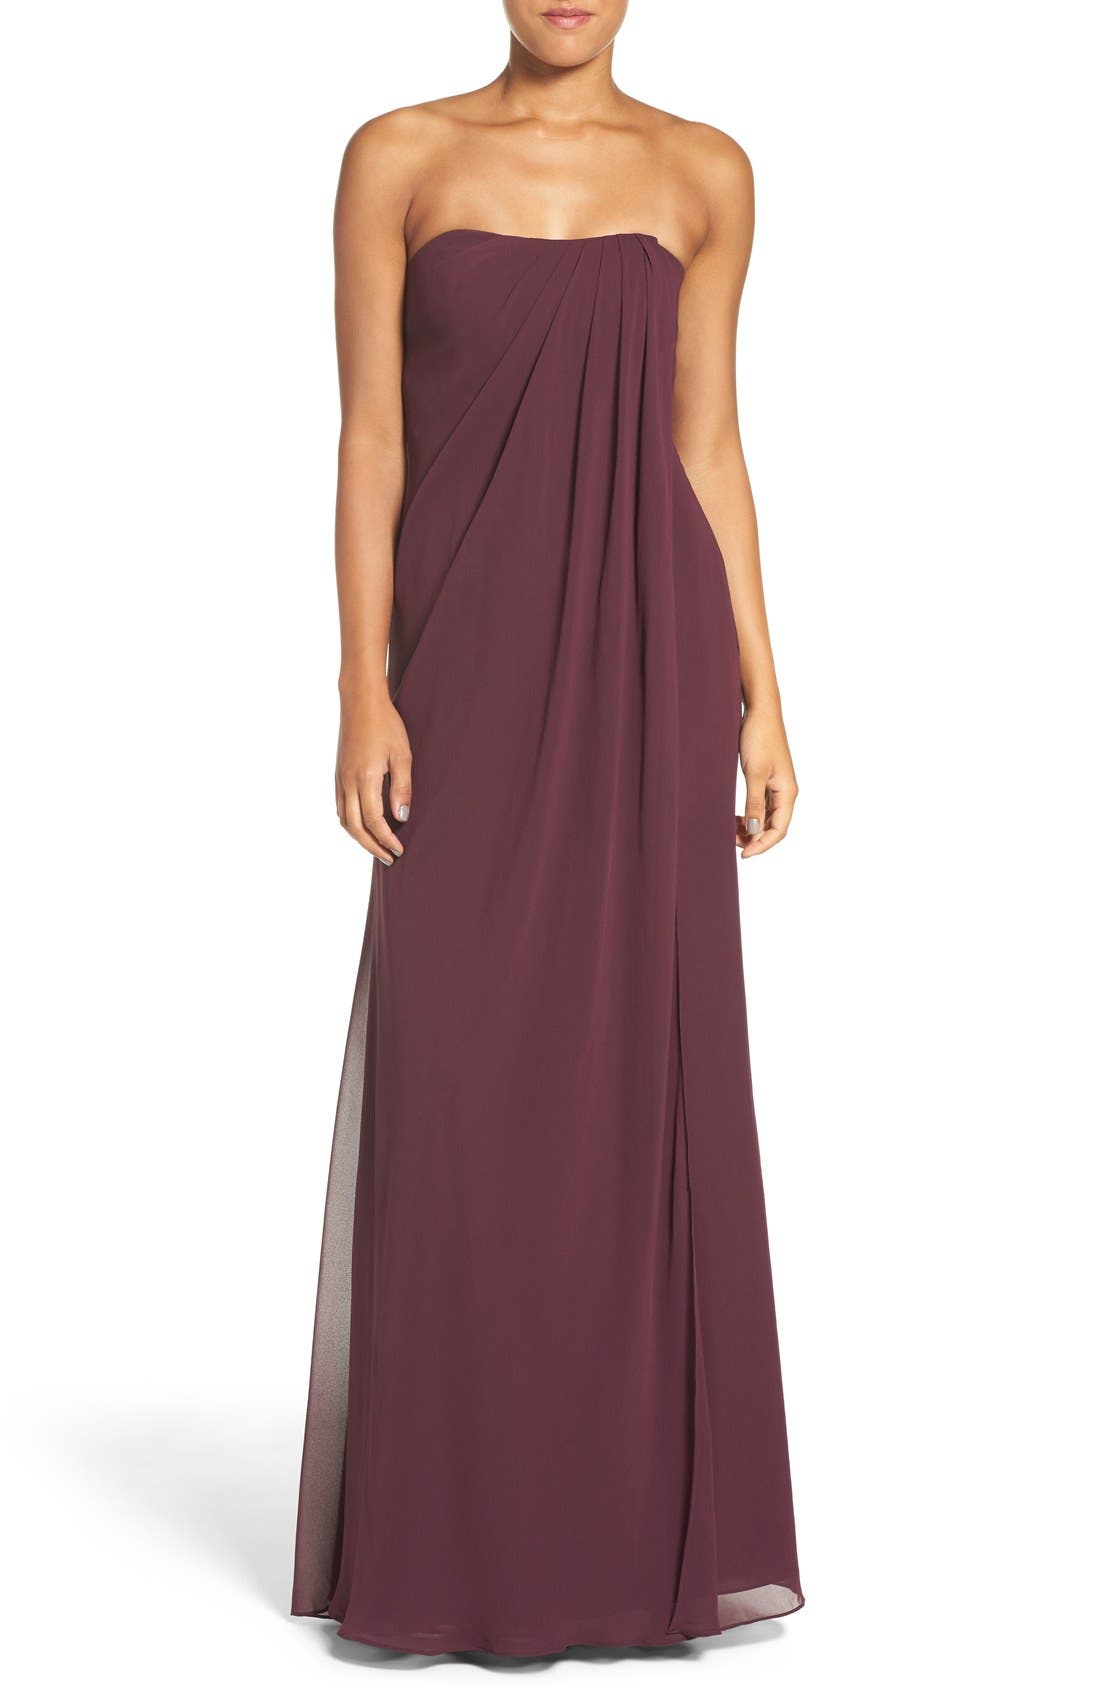 Alternate Image 1 Selected - Jenny Yoo 'Raquel' Front Slit Strapless Chiffon Gown